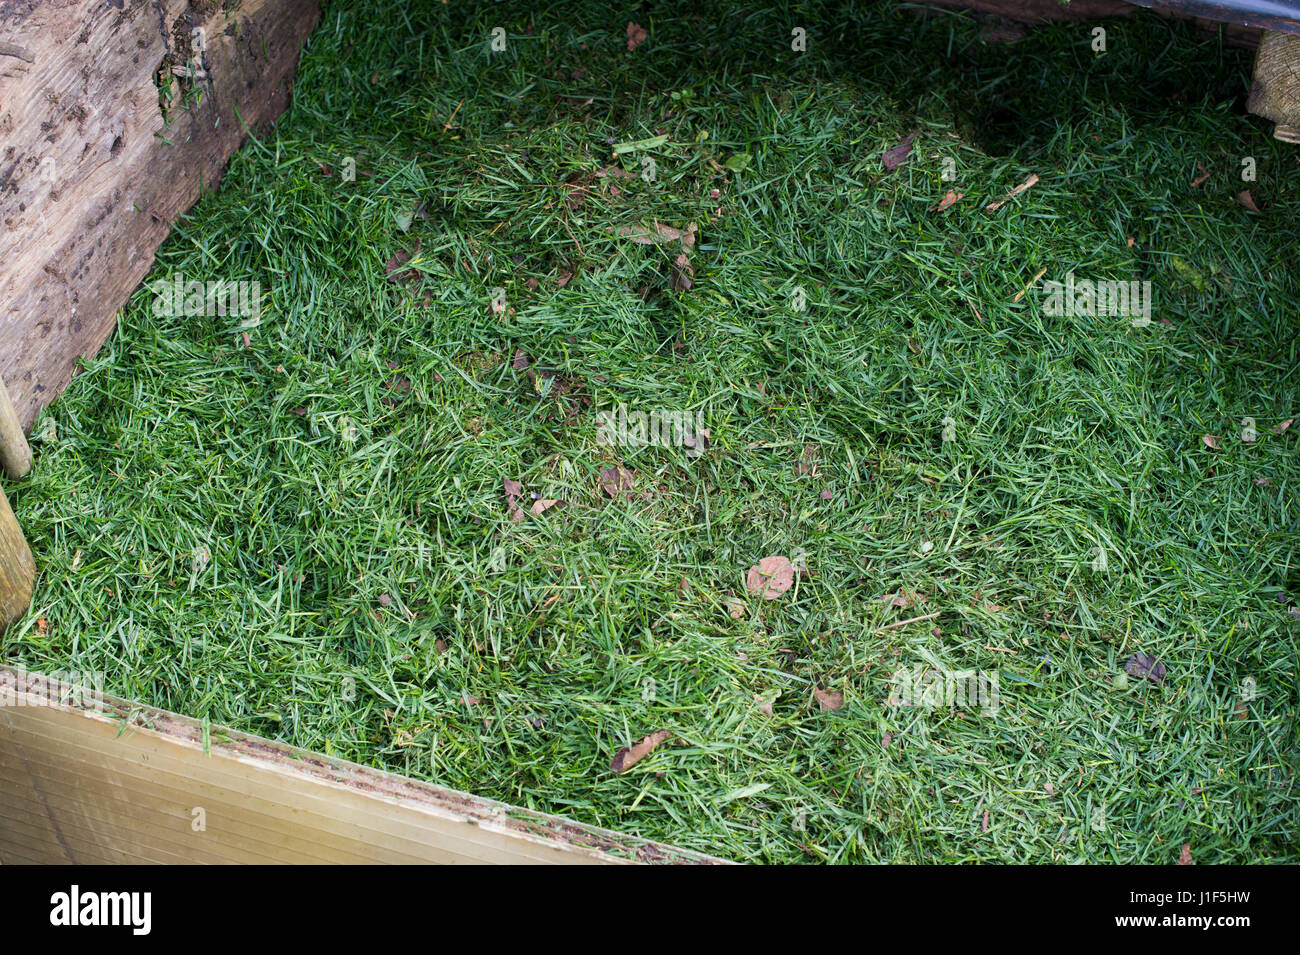 Grass clippings on a compost heap. UK - Stock Image